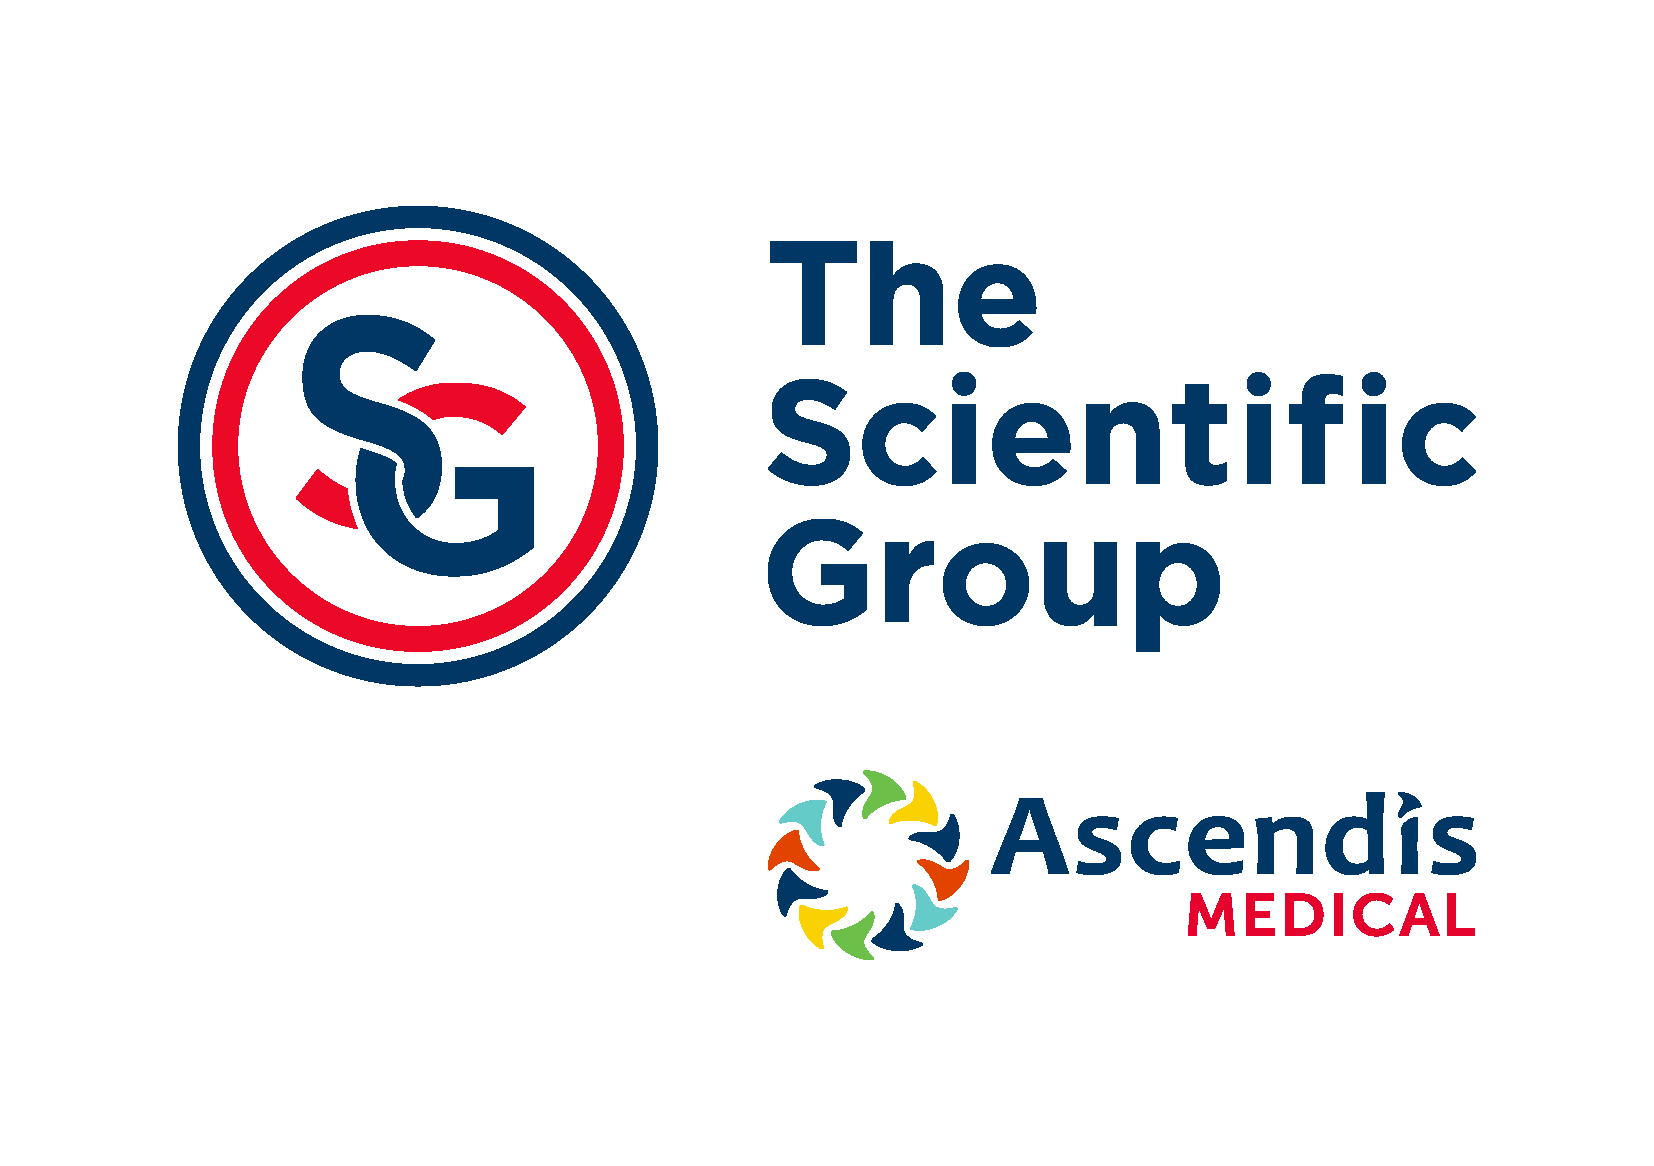 The Scientific Group